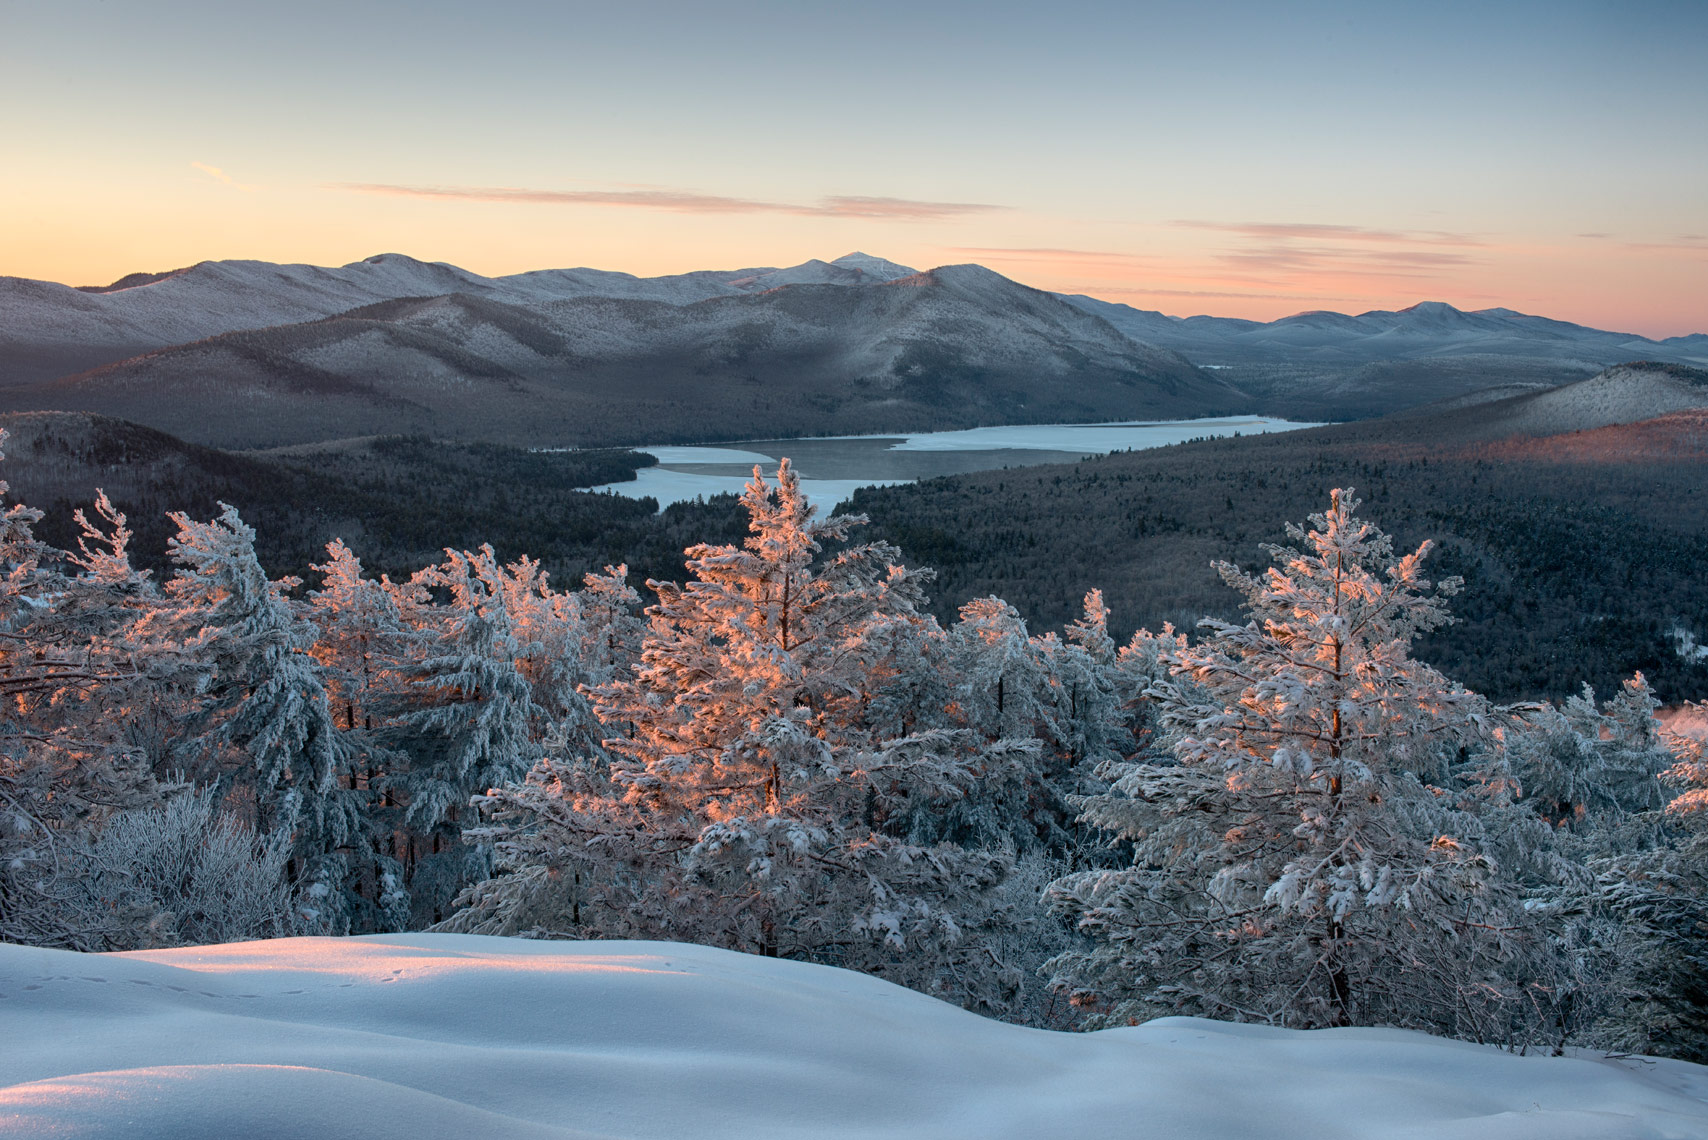 Winter Morning on Silver lake Mountain, Adirondack Mountains, New York State